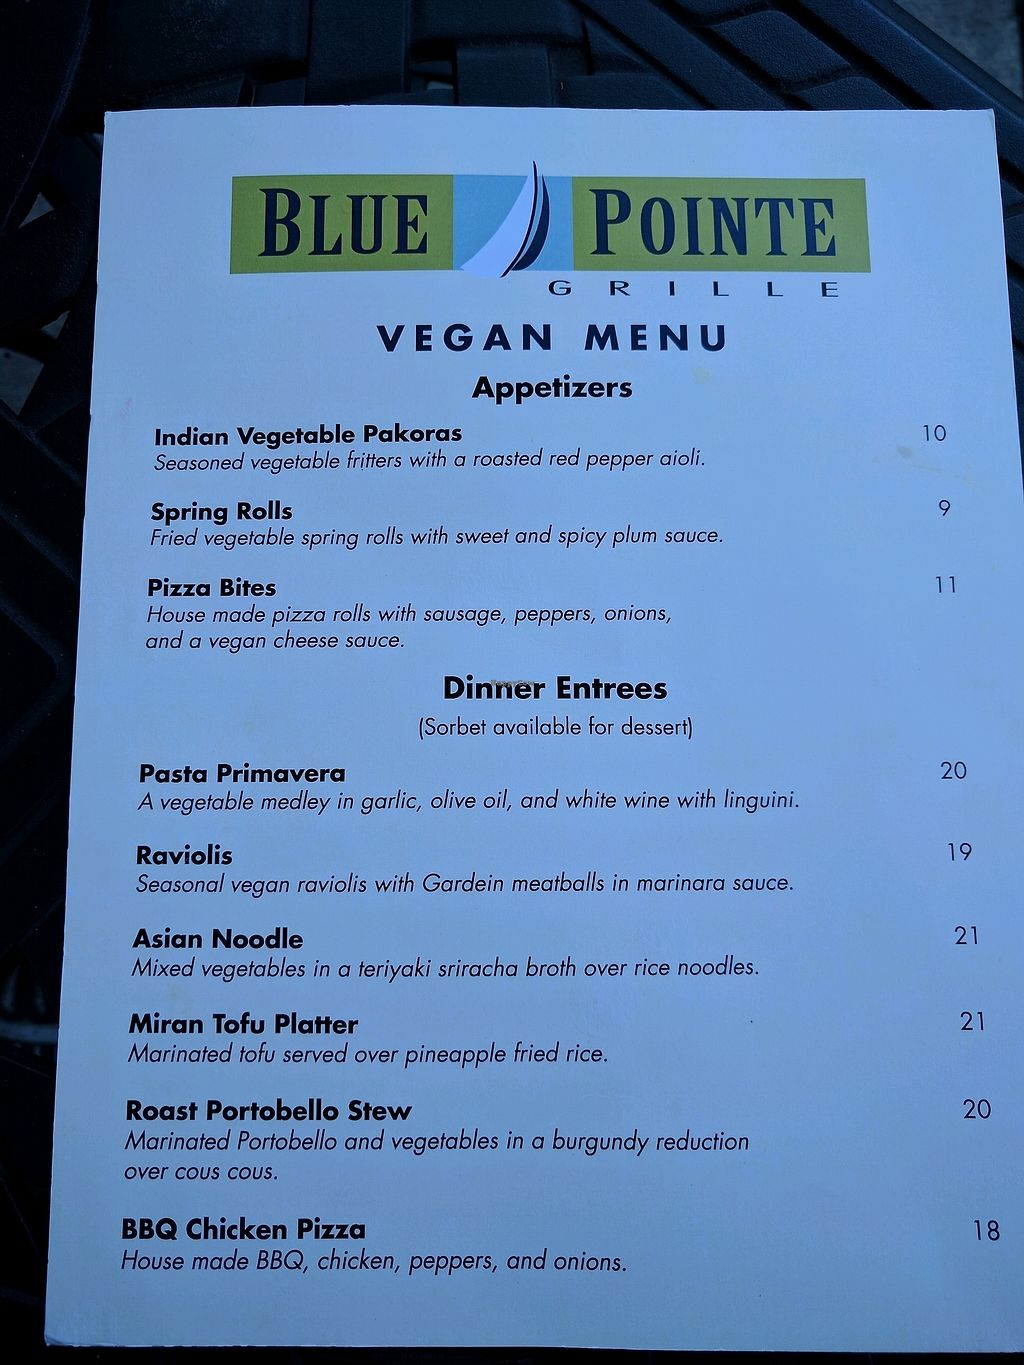 """Photo of Blue Pointe Grille  by <a href=""""/members/profile/Chickadee"""">Chickadee</a> <br/>vegan menu as of 9/23/17 <br/> September 23, 2017  - <a href='/contact/abuse/image/29731/307583'>Report</a>"""